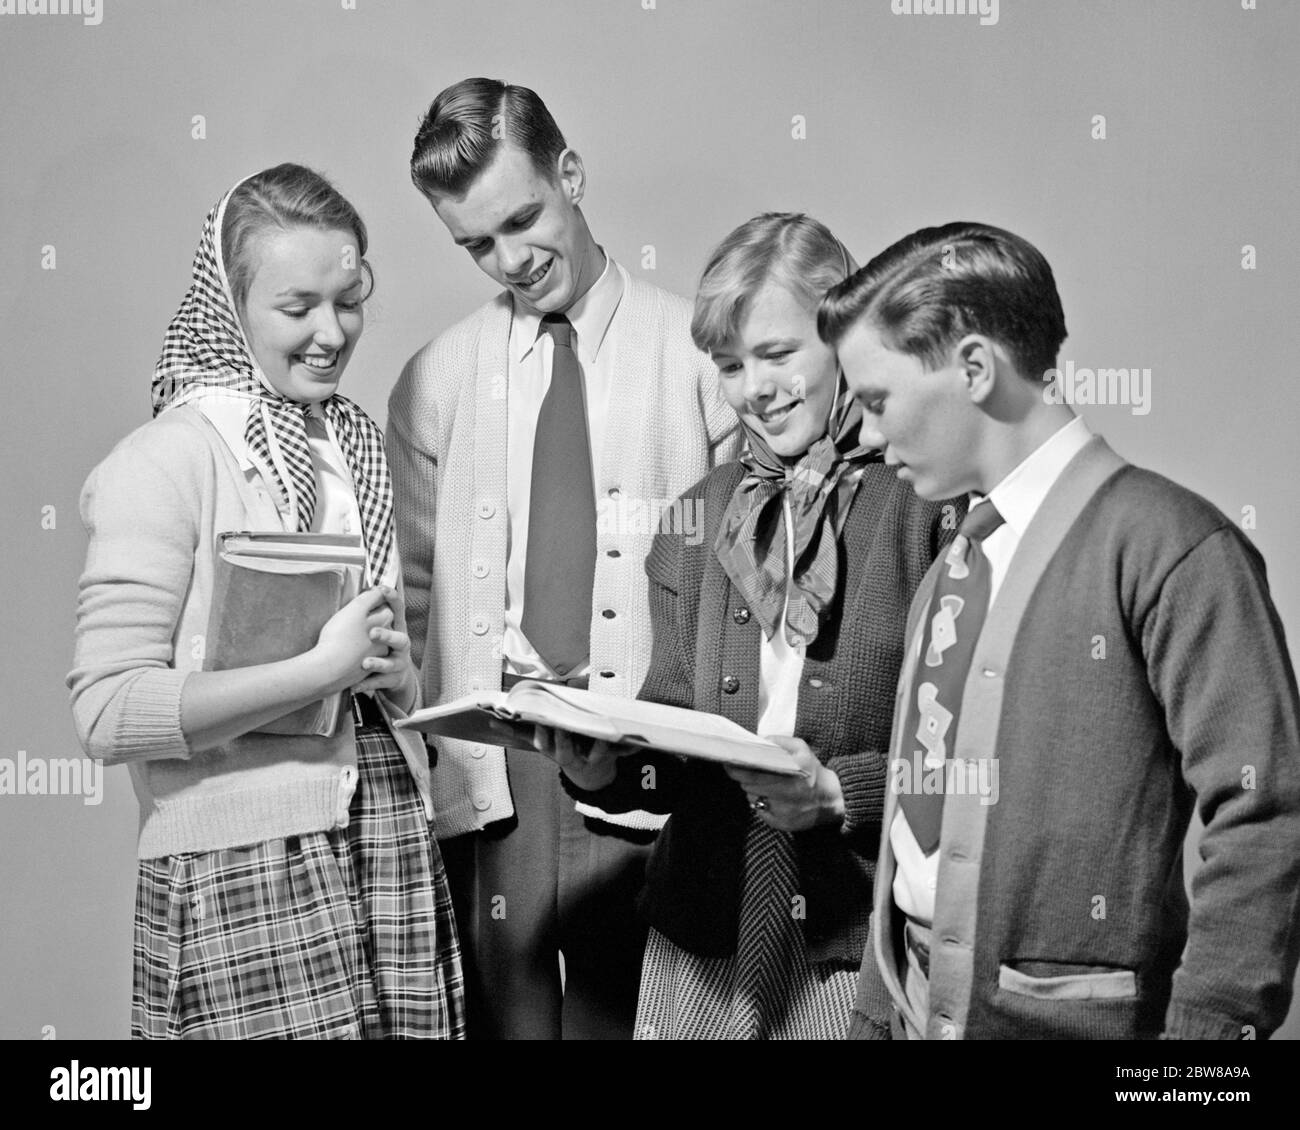 1950s 4 Senior High School Boys And Girls Looking At New Text Book Wearing Sweaters Boys Have Neckties Girls Head Scarves S4967 Lan001 Hars Old Fashion Juvenile Style Communication Friend Information